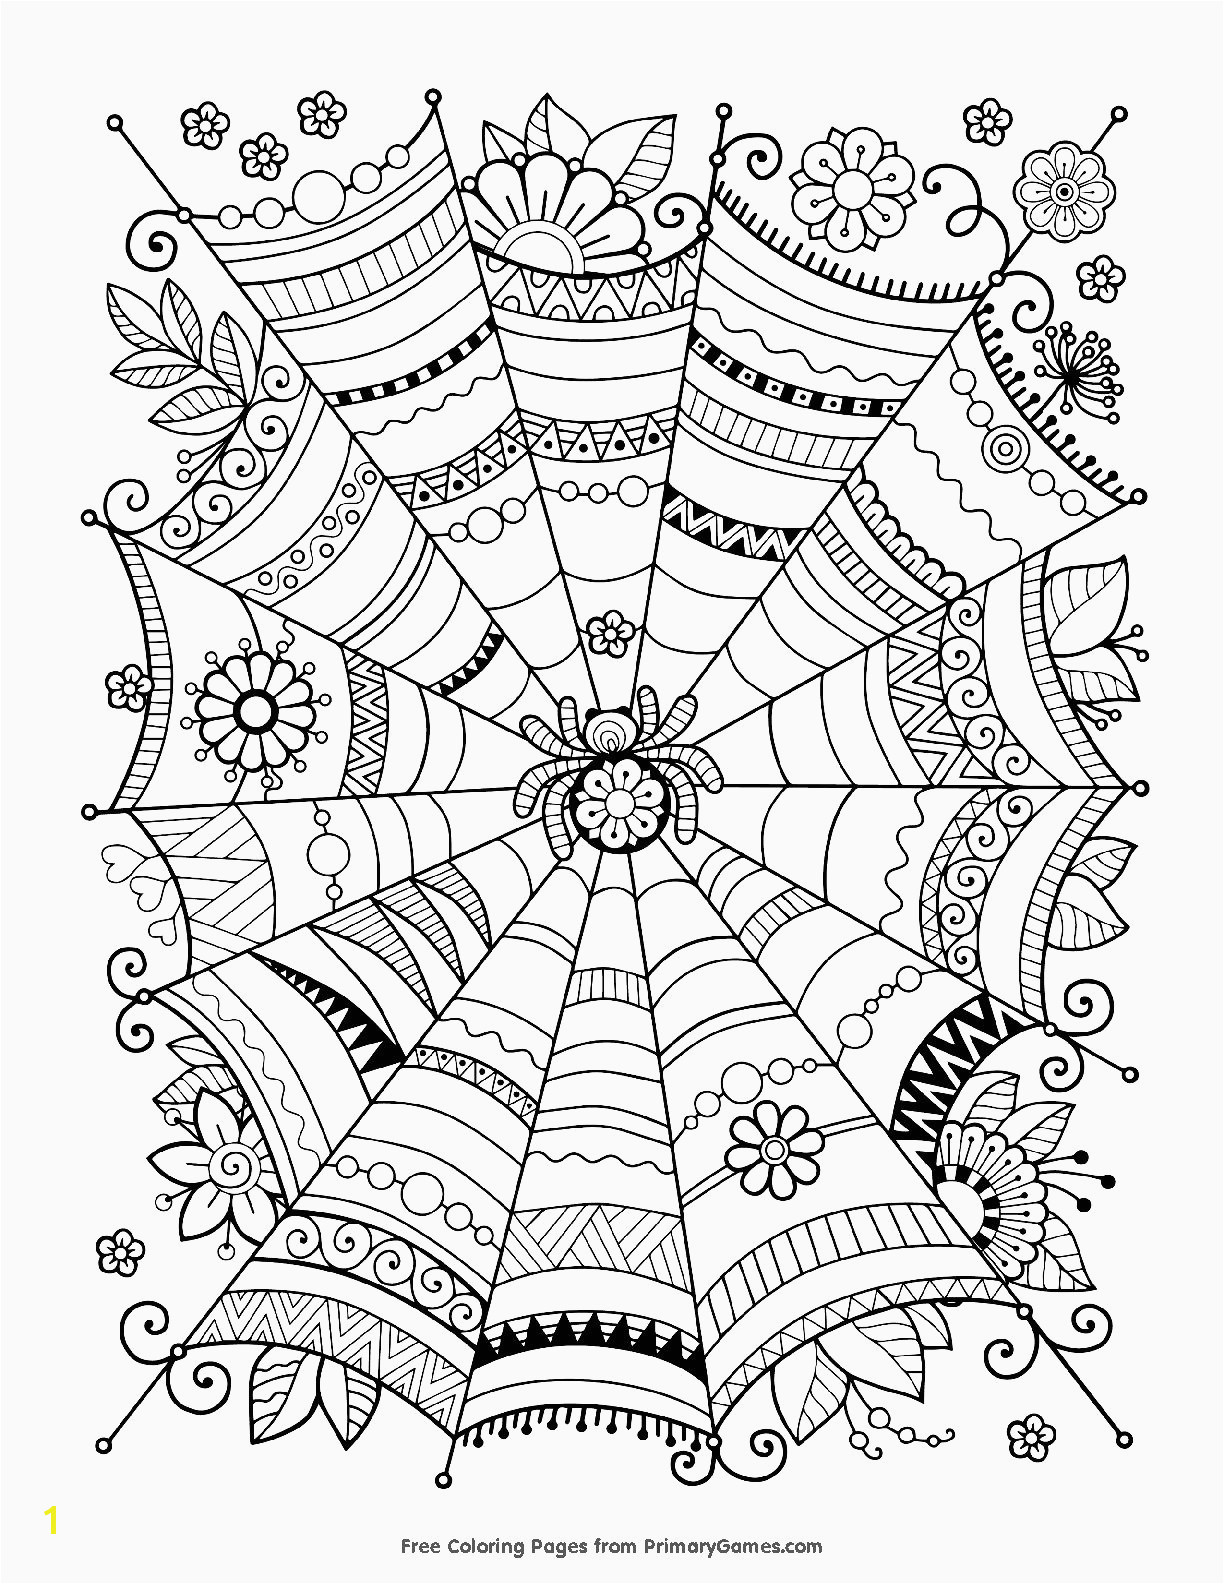 Printable halloween coloring pages a joke best of spider web coloring page elegant pin od pou